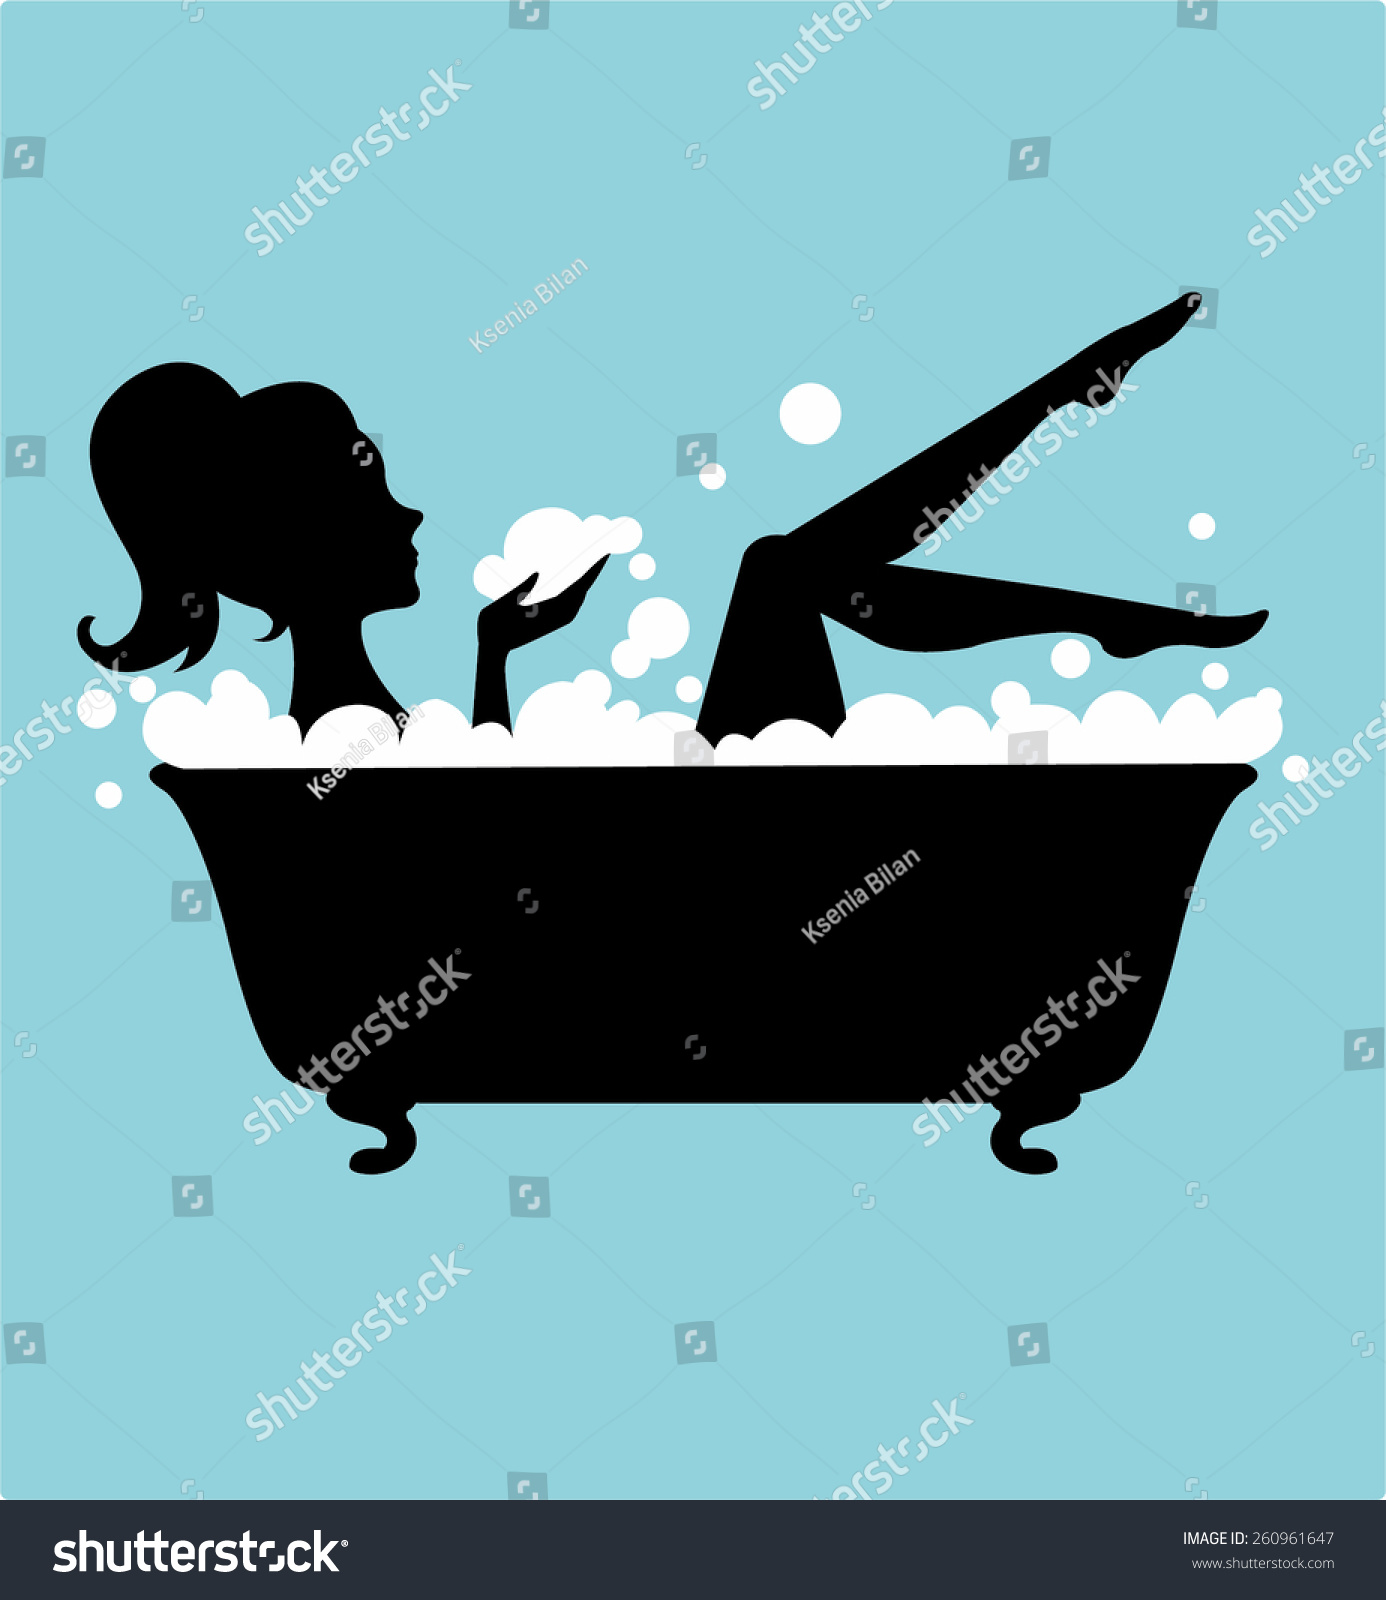 Woman Bathtub Silhouette Stock Vector 260961647 - Shutterstock